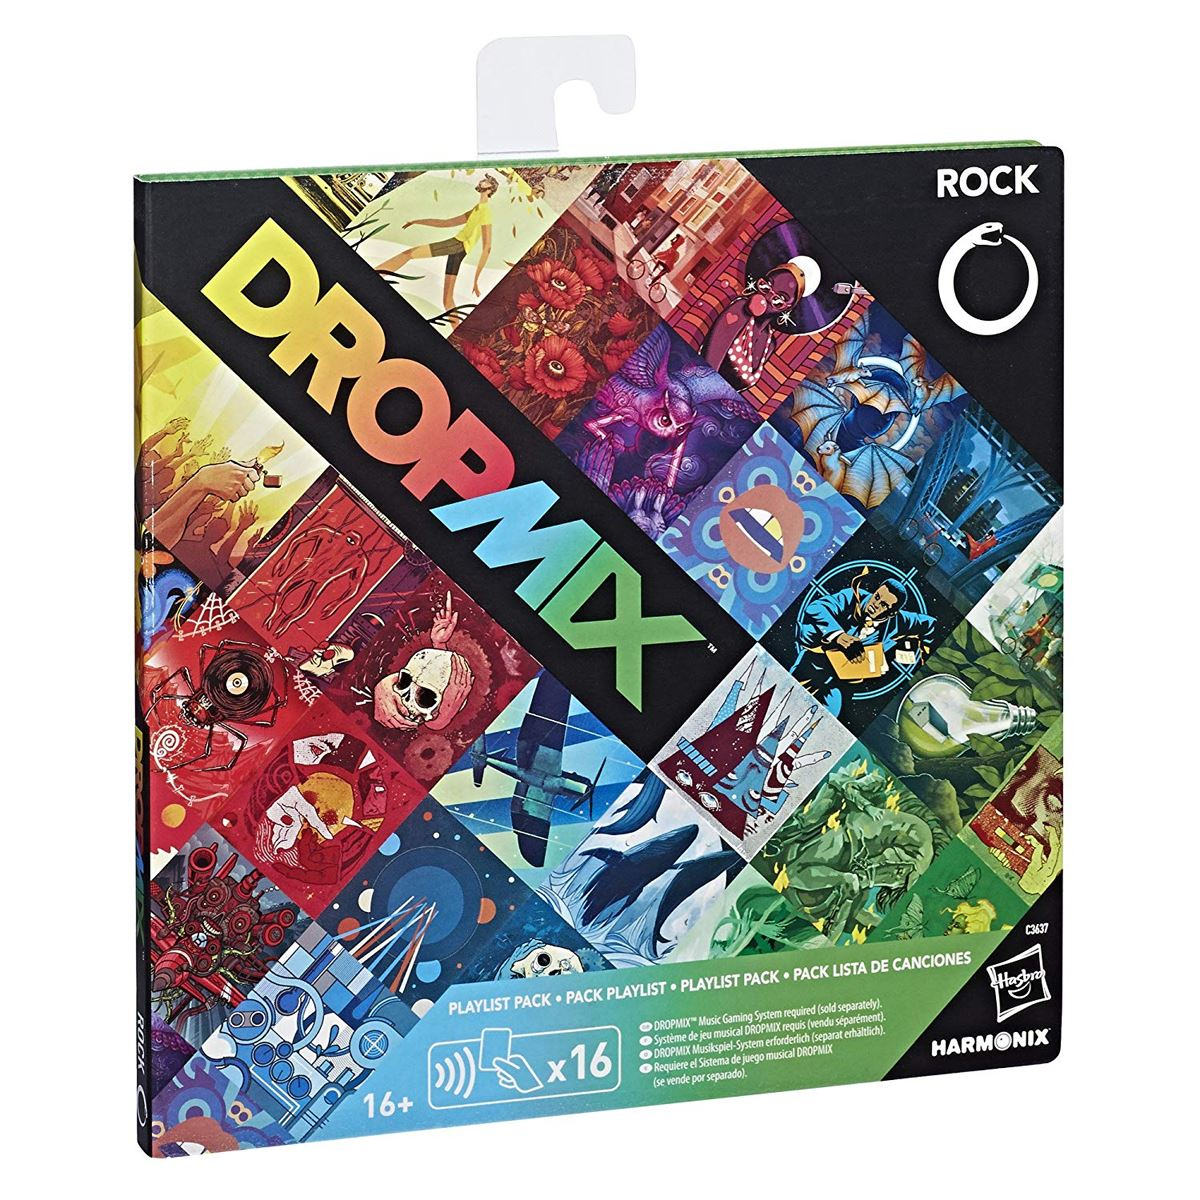 New-Dropmix-Rock-Pop-Hip-Hop-Or-Electronic-Playlist-Card-Pack-Hasbro-Official miniatuur 9